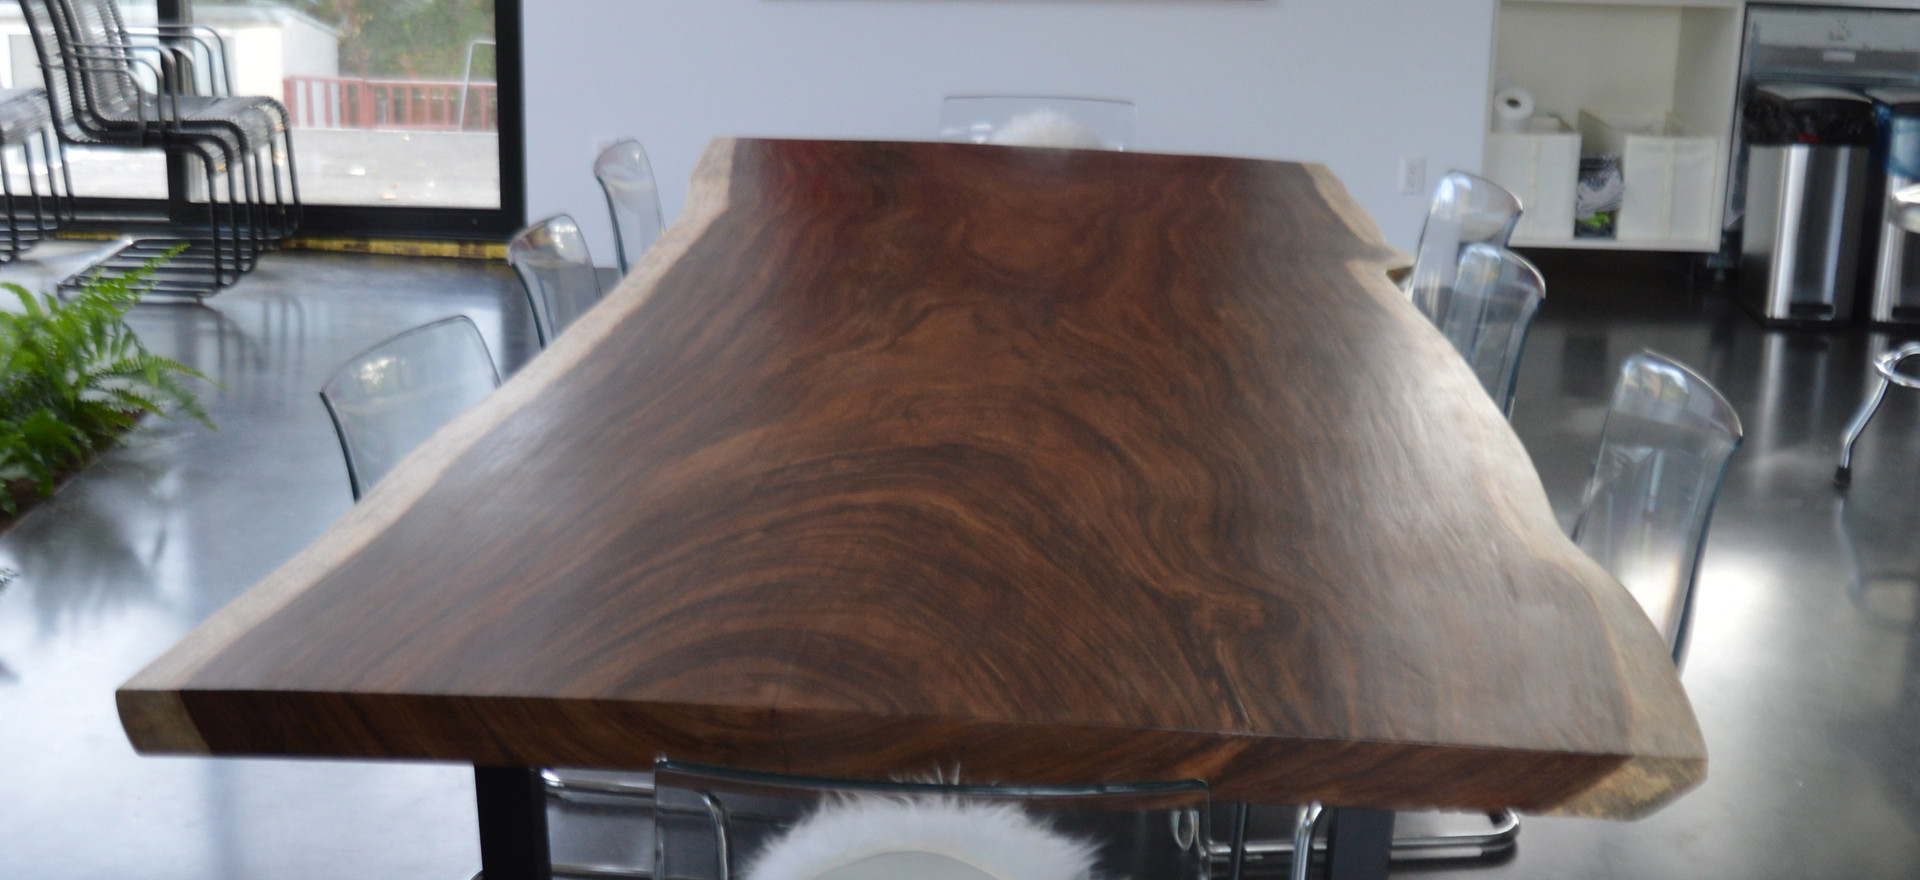 12511 Dining Room Table Detail